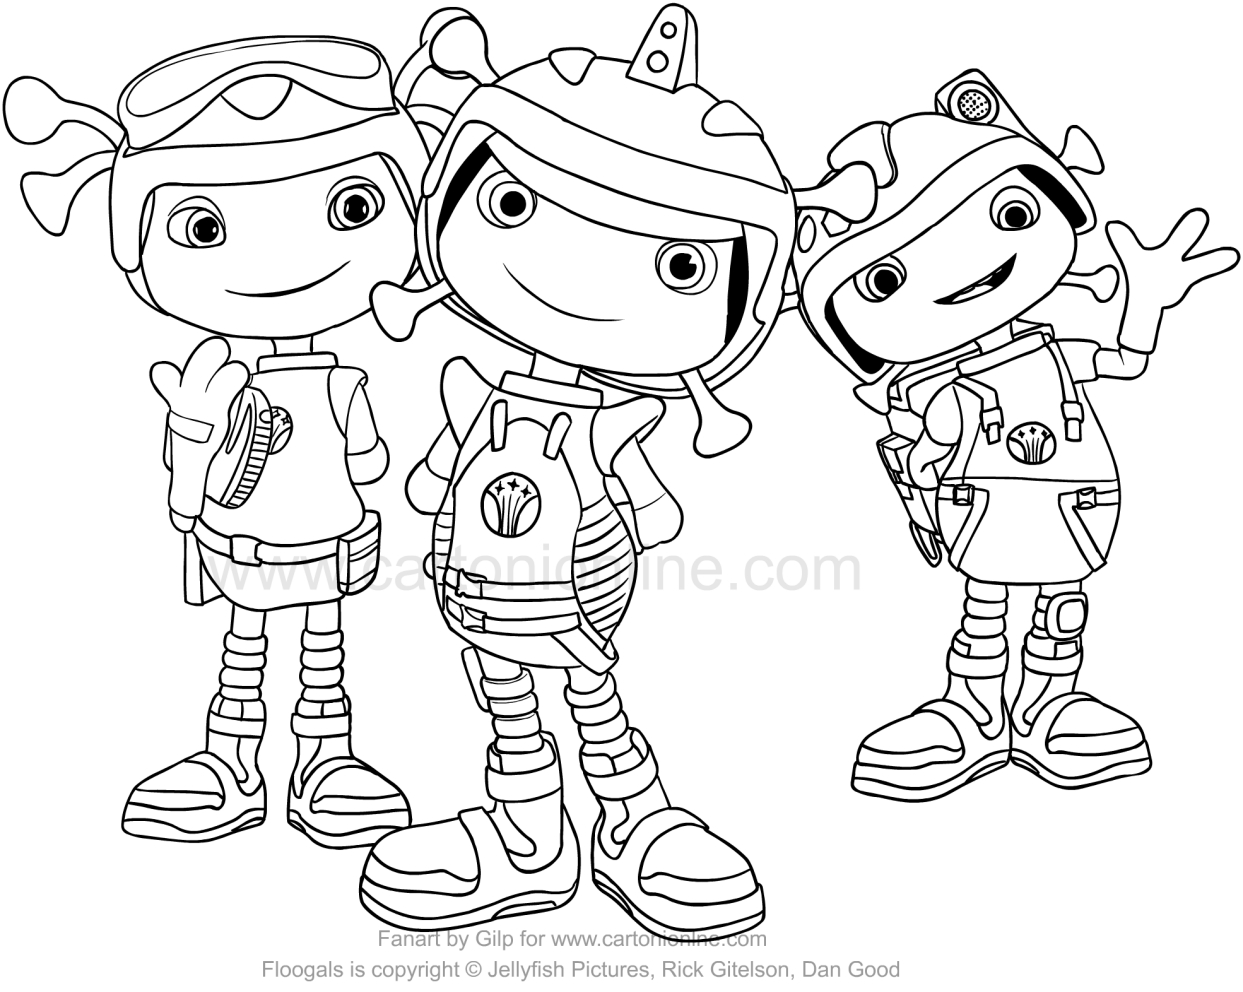 This is an image of Epic floogals coloring pages